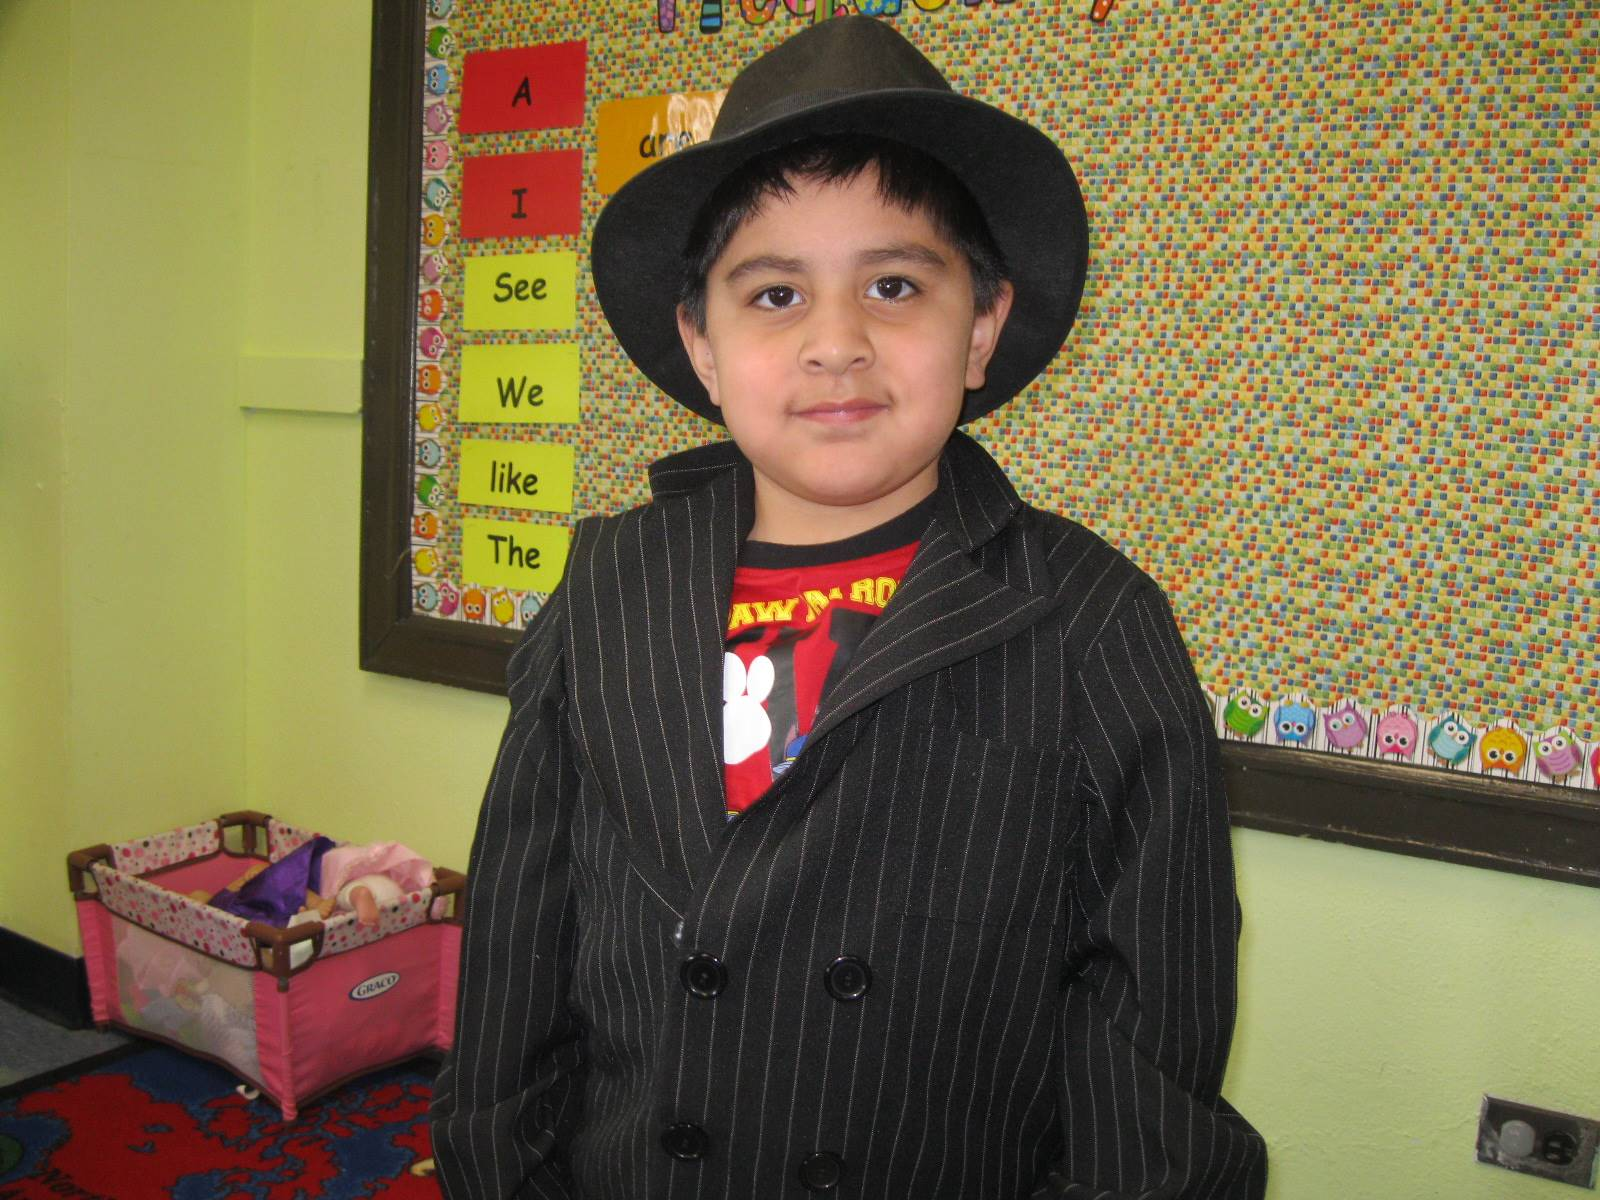 student dressed up as a private detective.